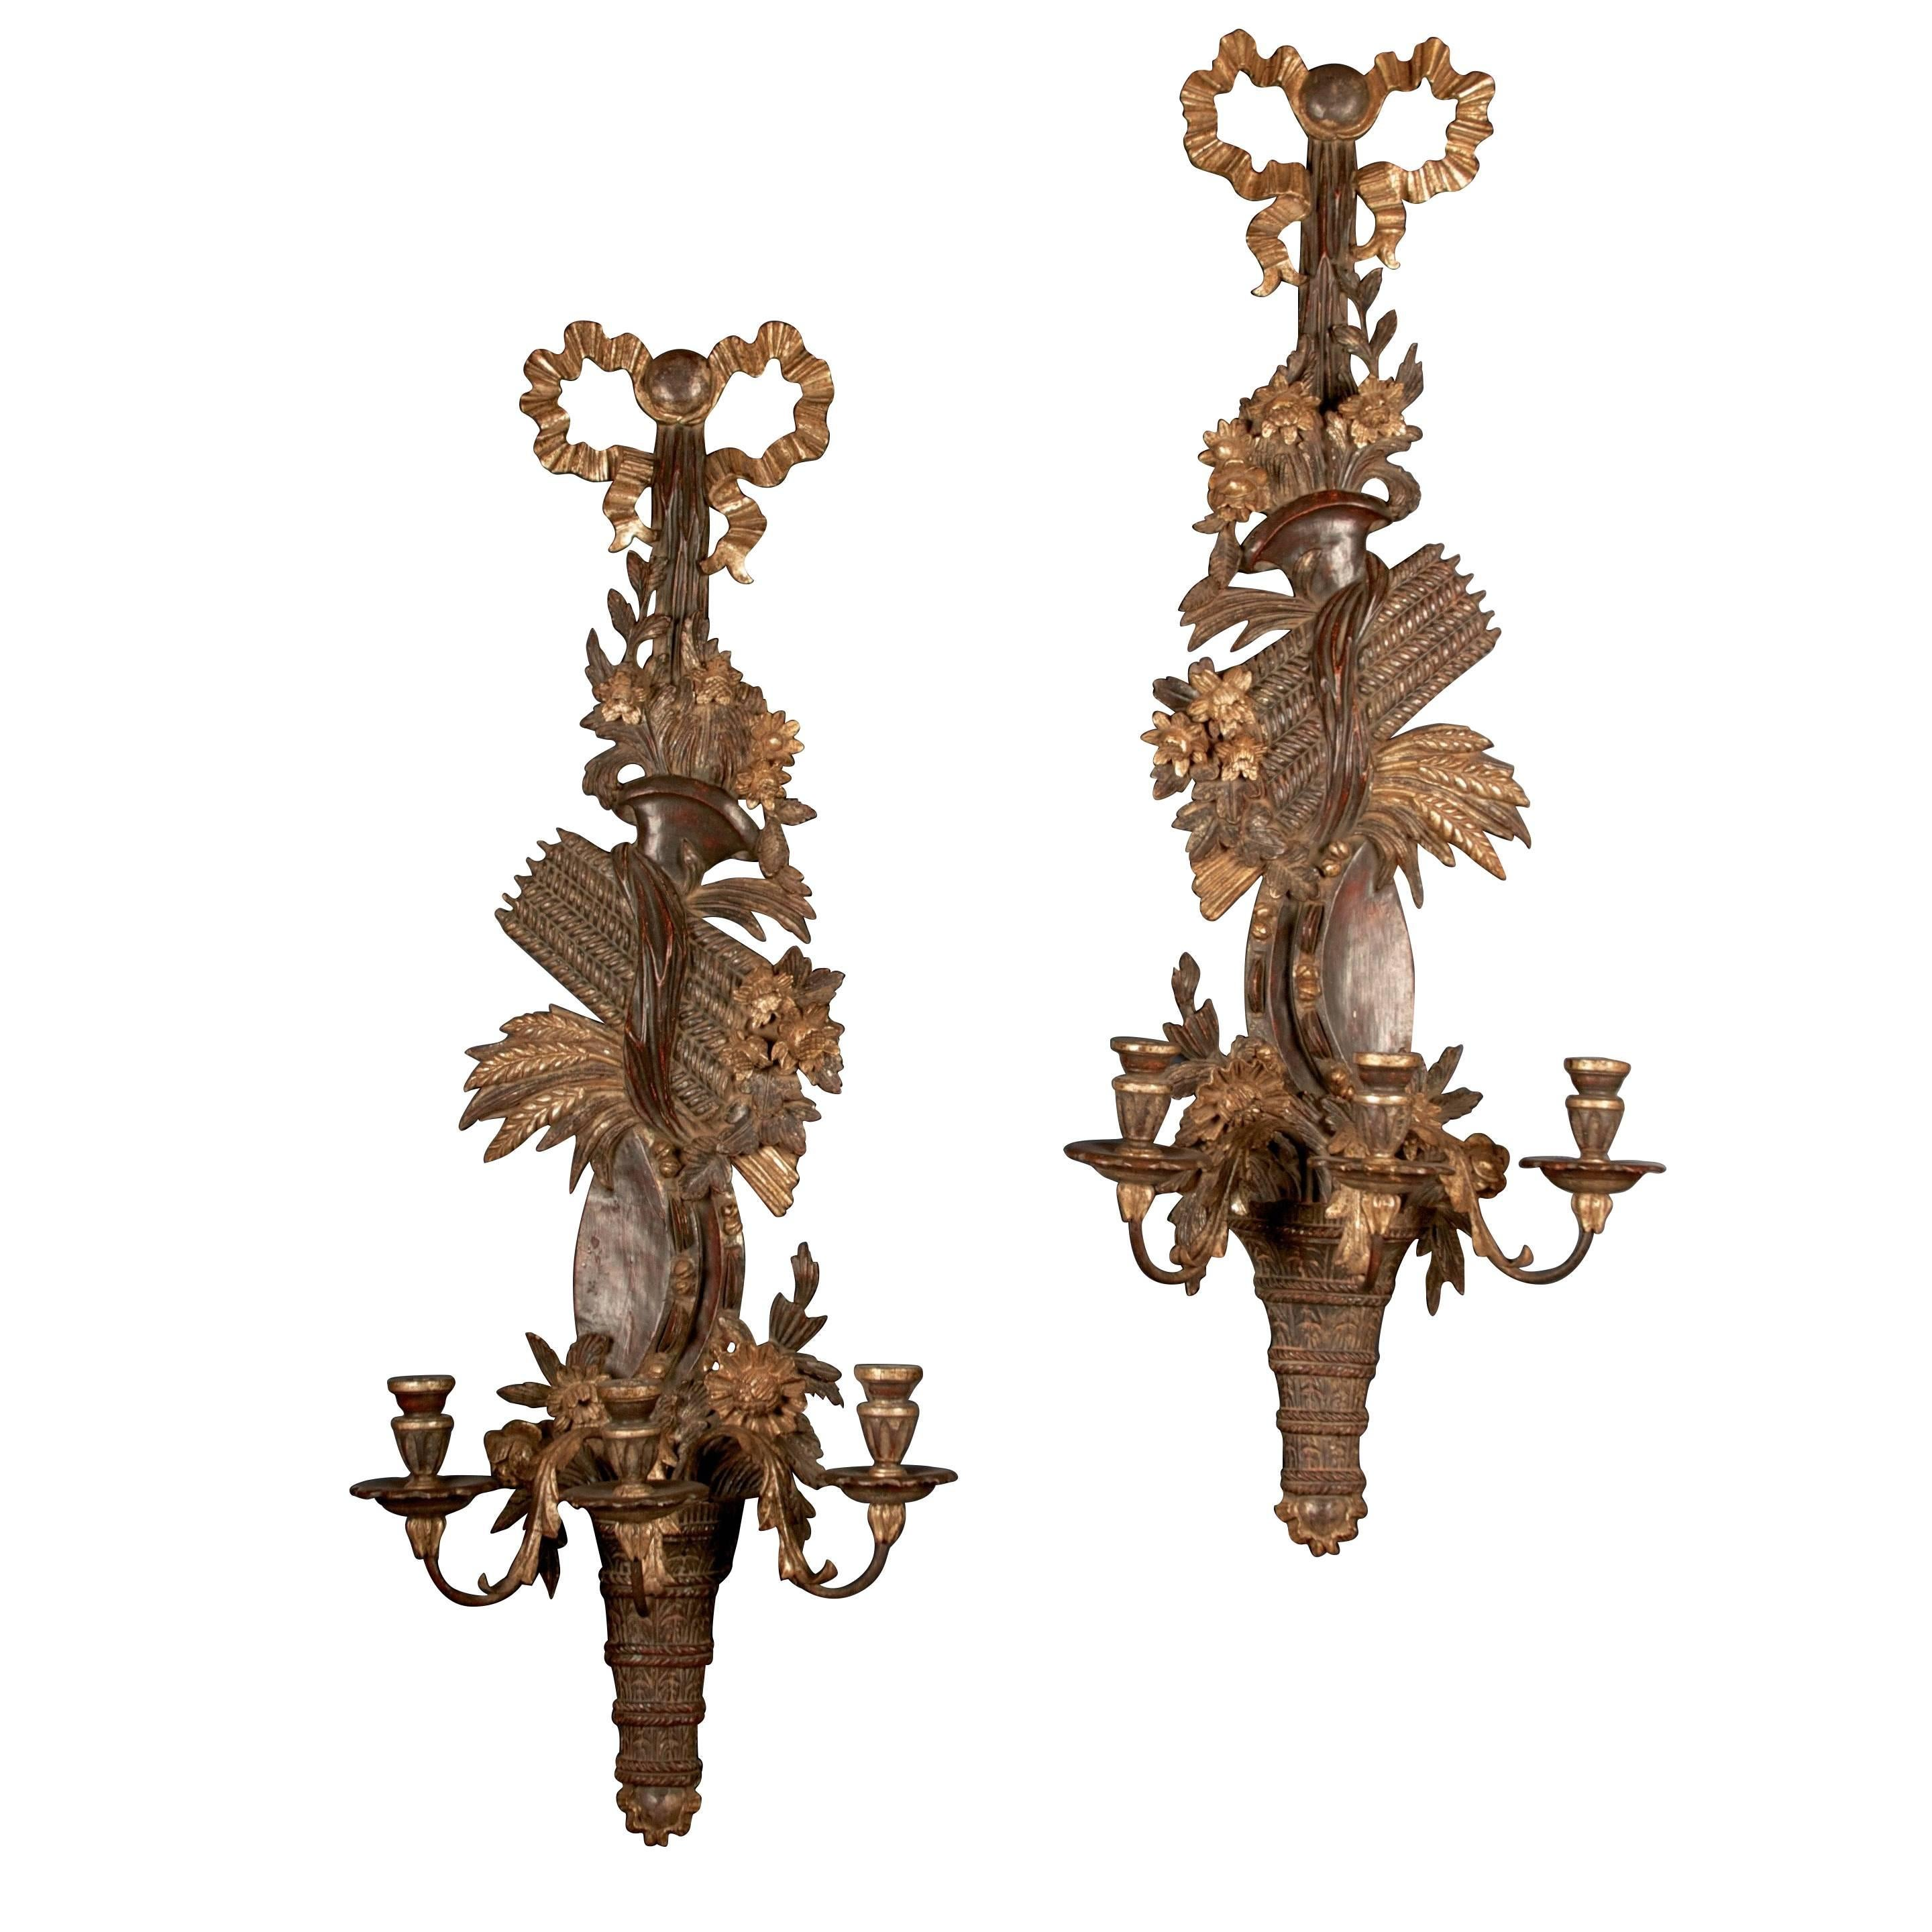 Pair of 19th Century English Regency Carved Giltwood Sconces or Wall Appliques